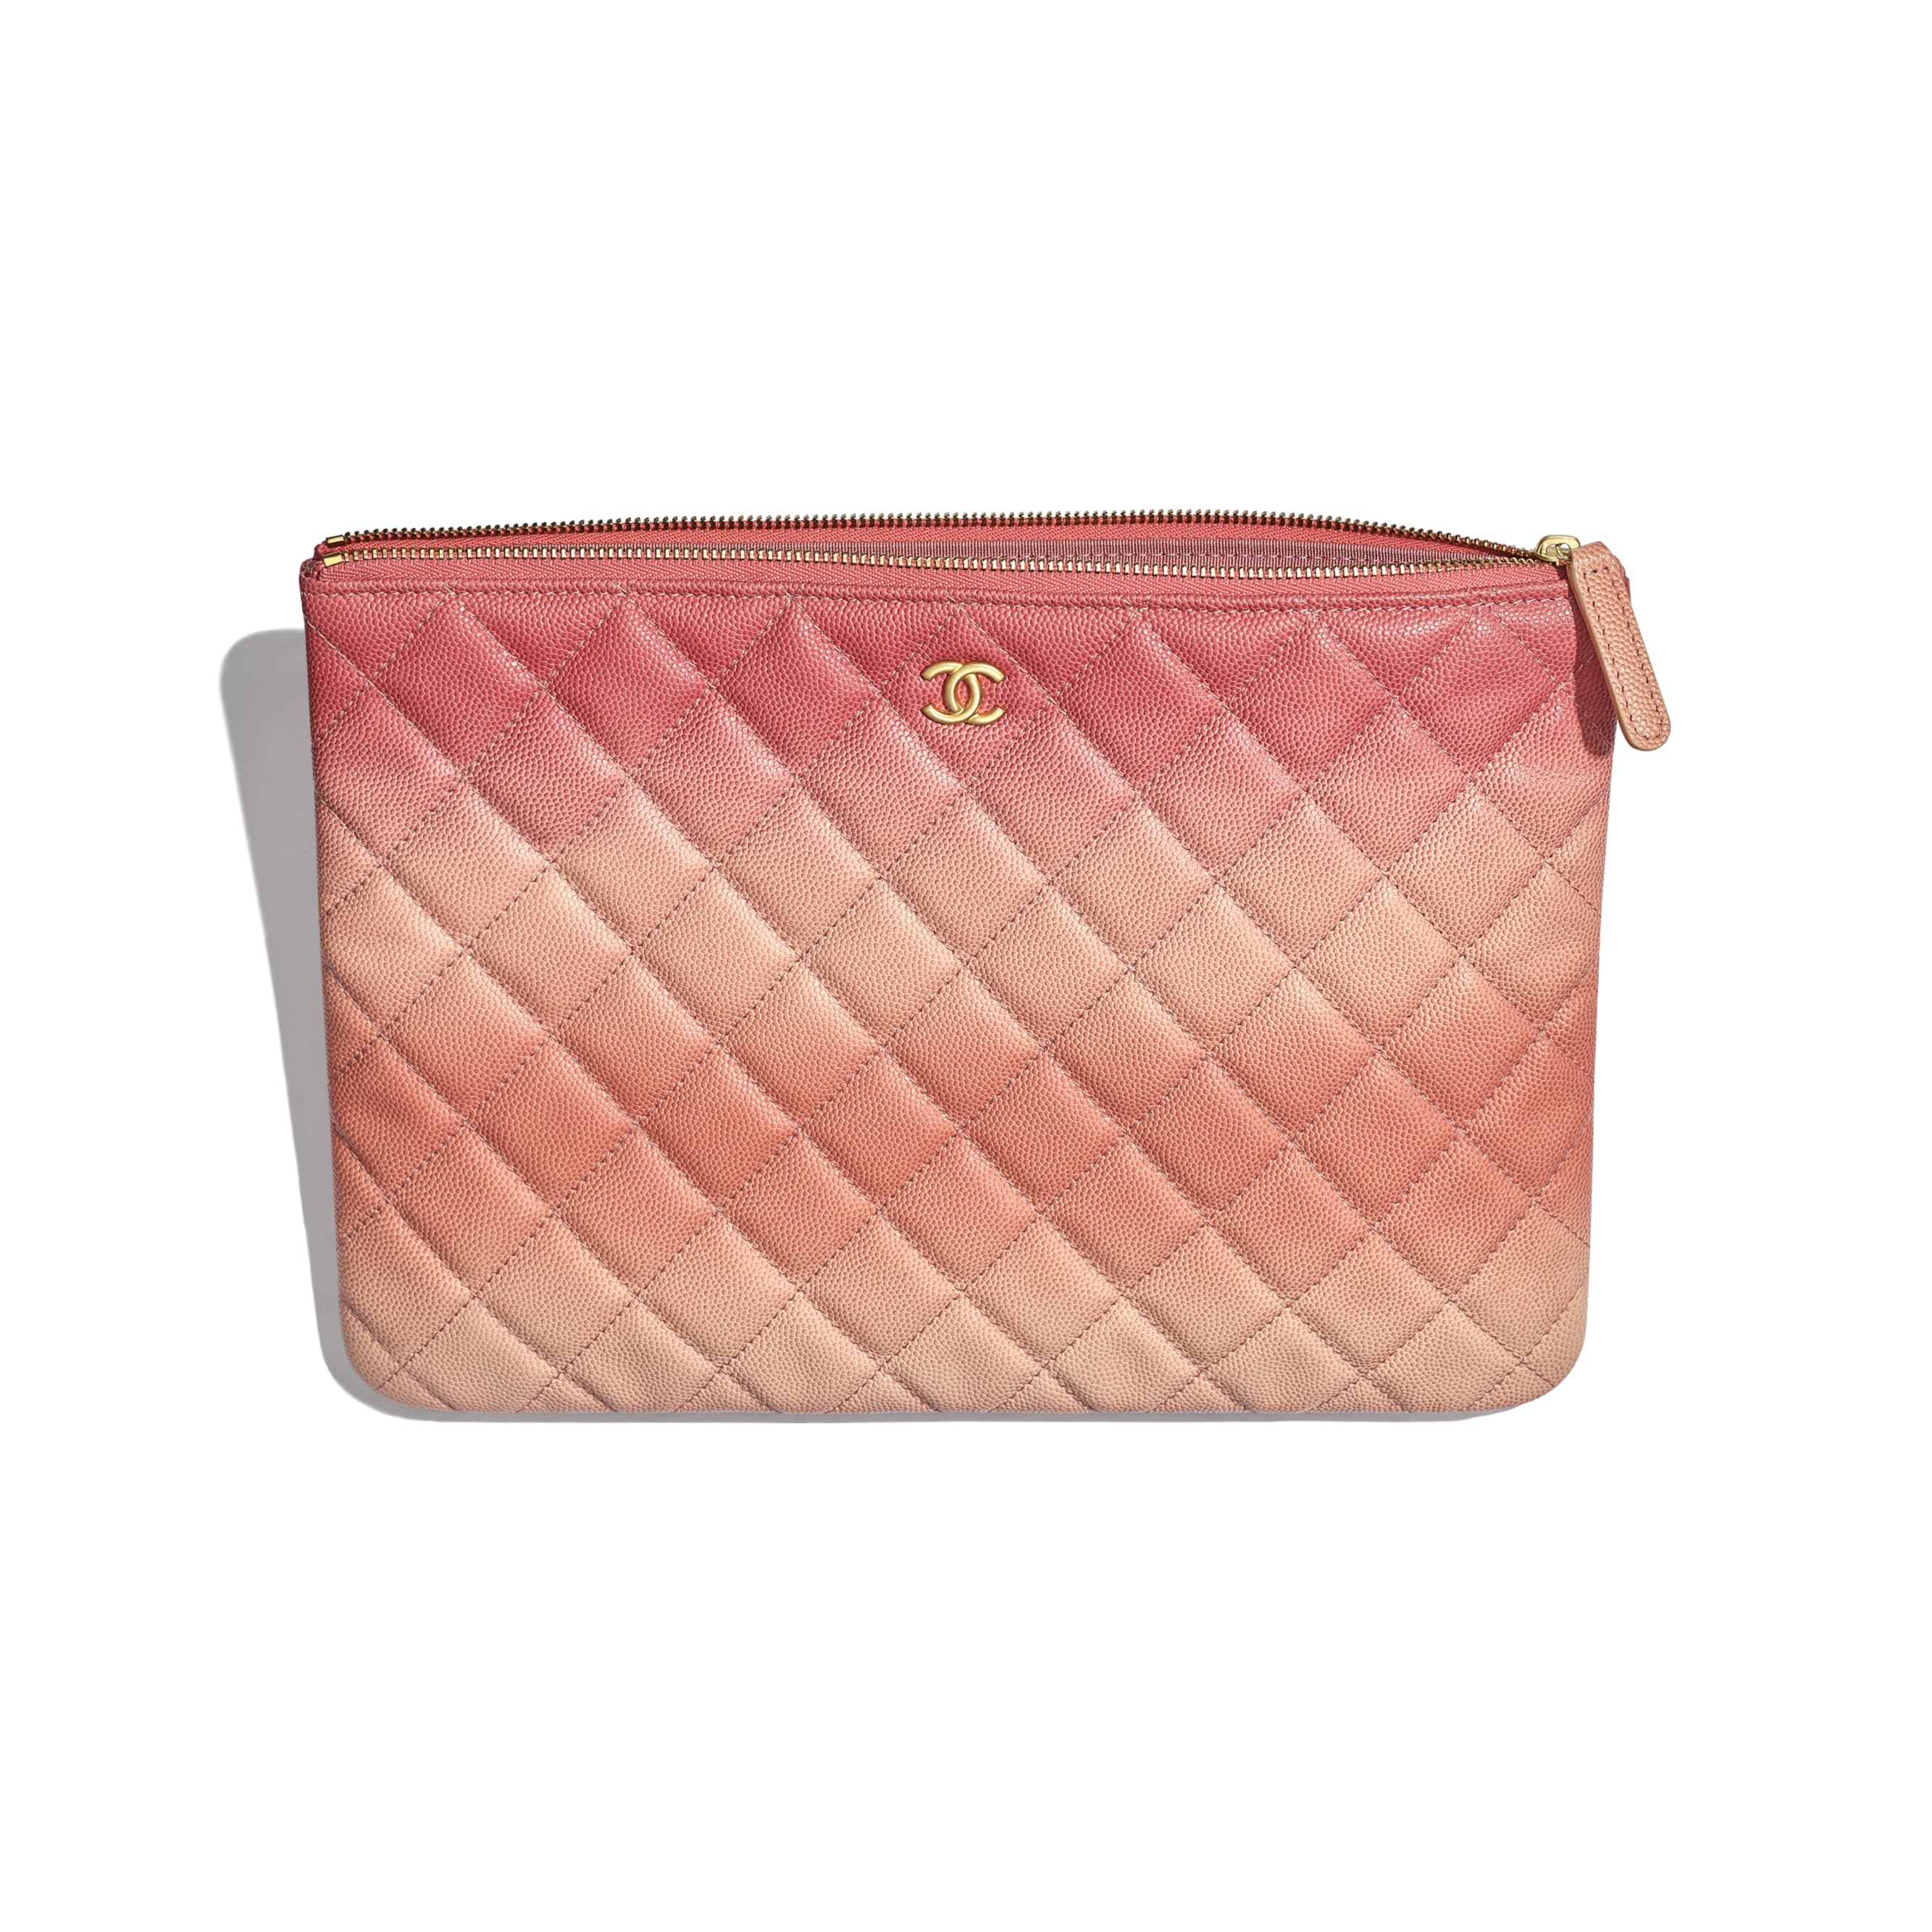 80aefaee4599 ... Classic Pouch - Coral - Grained Calfskin   Gold-Tone Metal - Other view  -